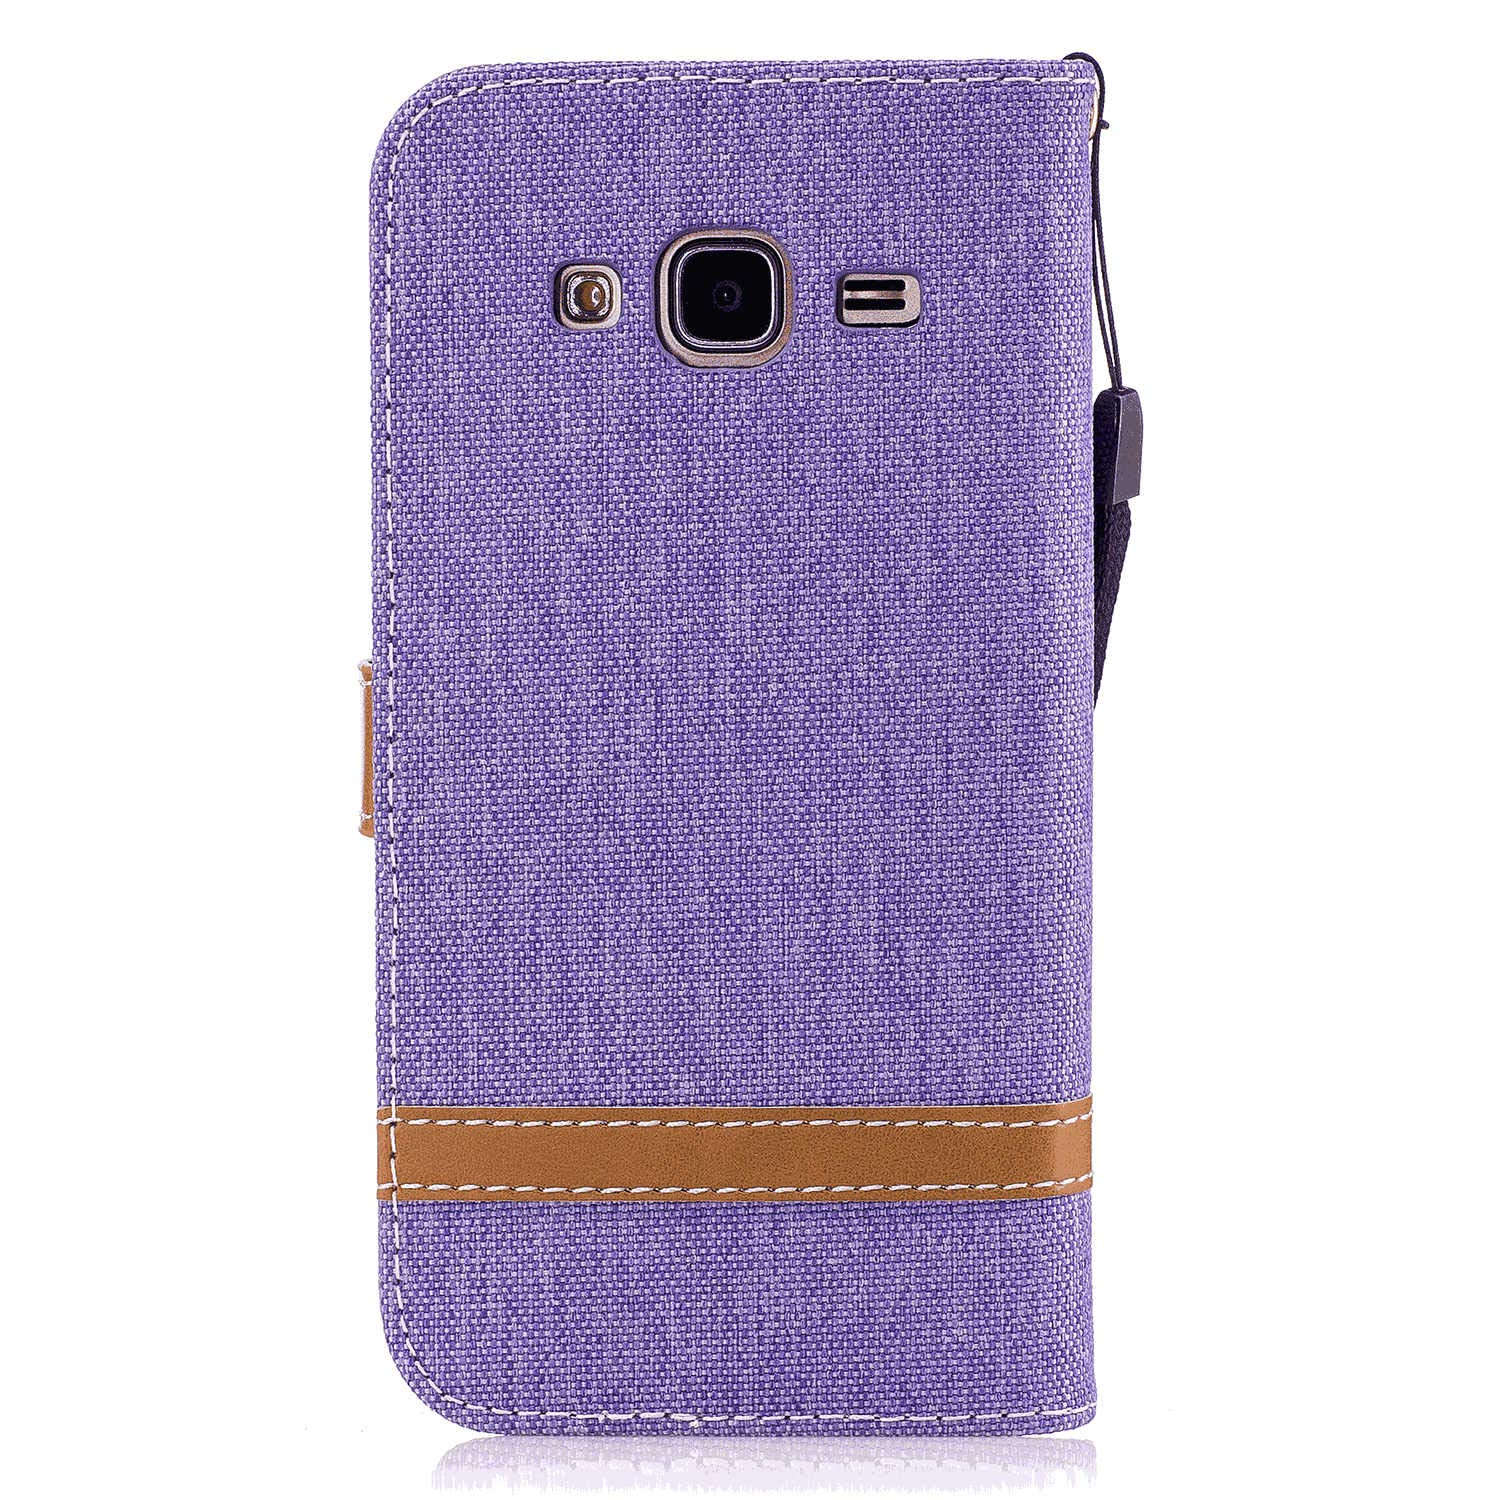 Cover for Samsung Galaxy A10E Leather Mobile Phone case Kickstand Extra-Protective Business Card Holders with Free Waterproof-Bag Gripping Samsung Galaxy A10E Flip Case